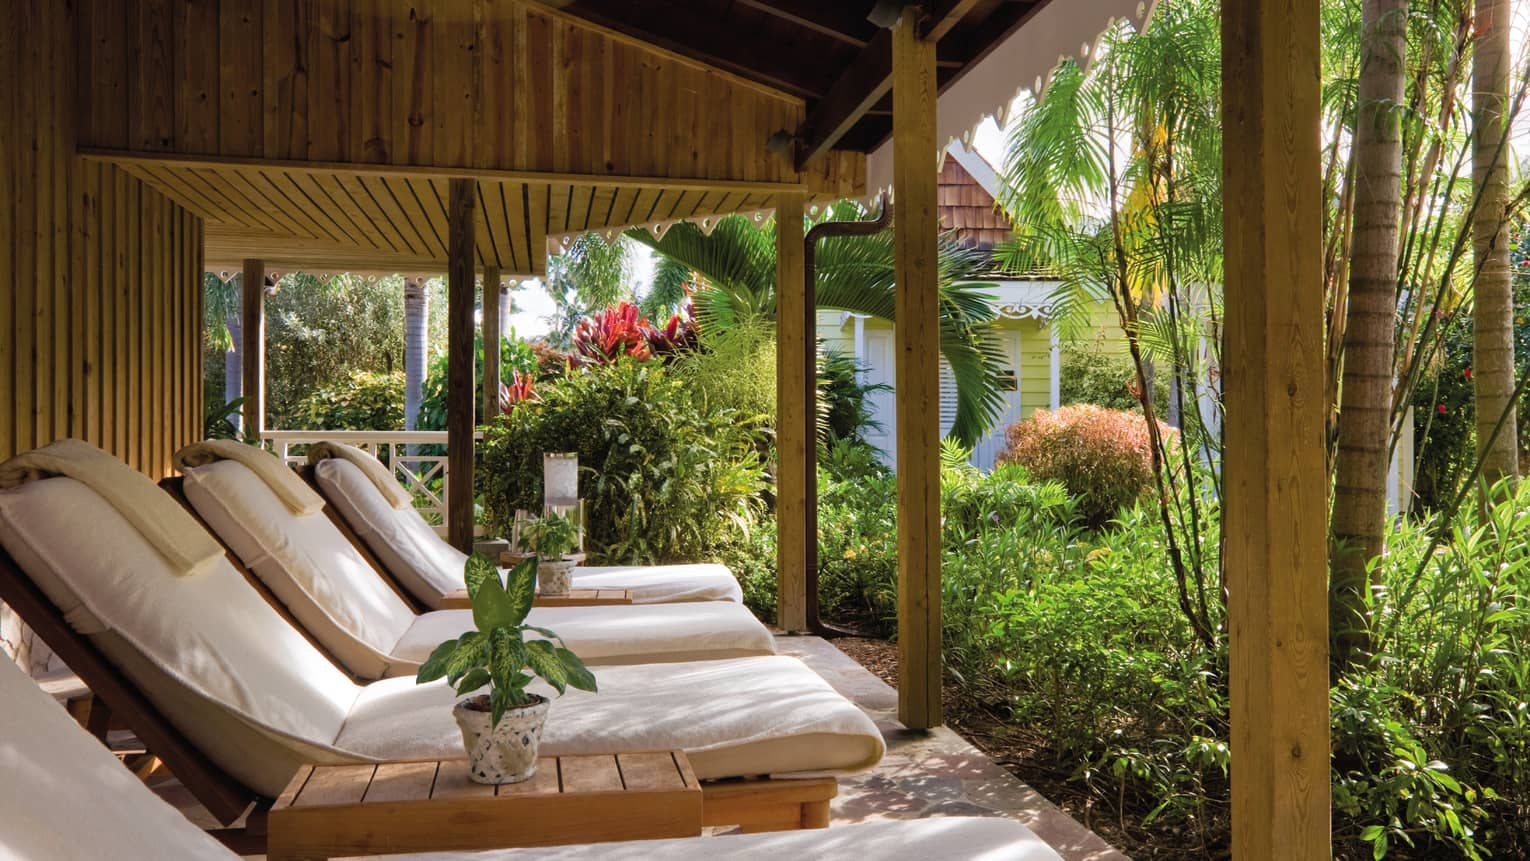 Plush white lounge chairs under wood patio facing tropical garden